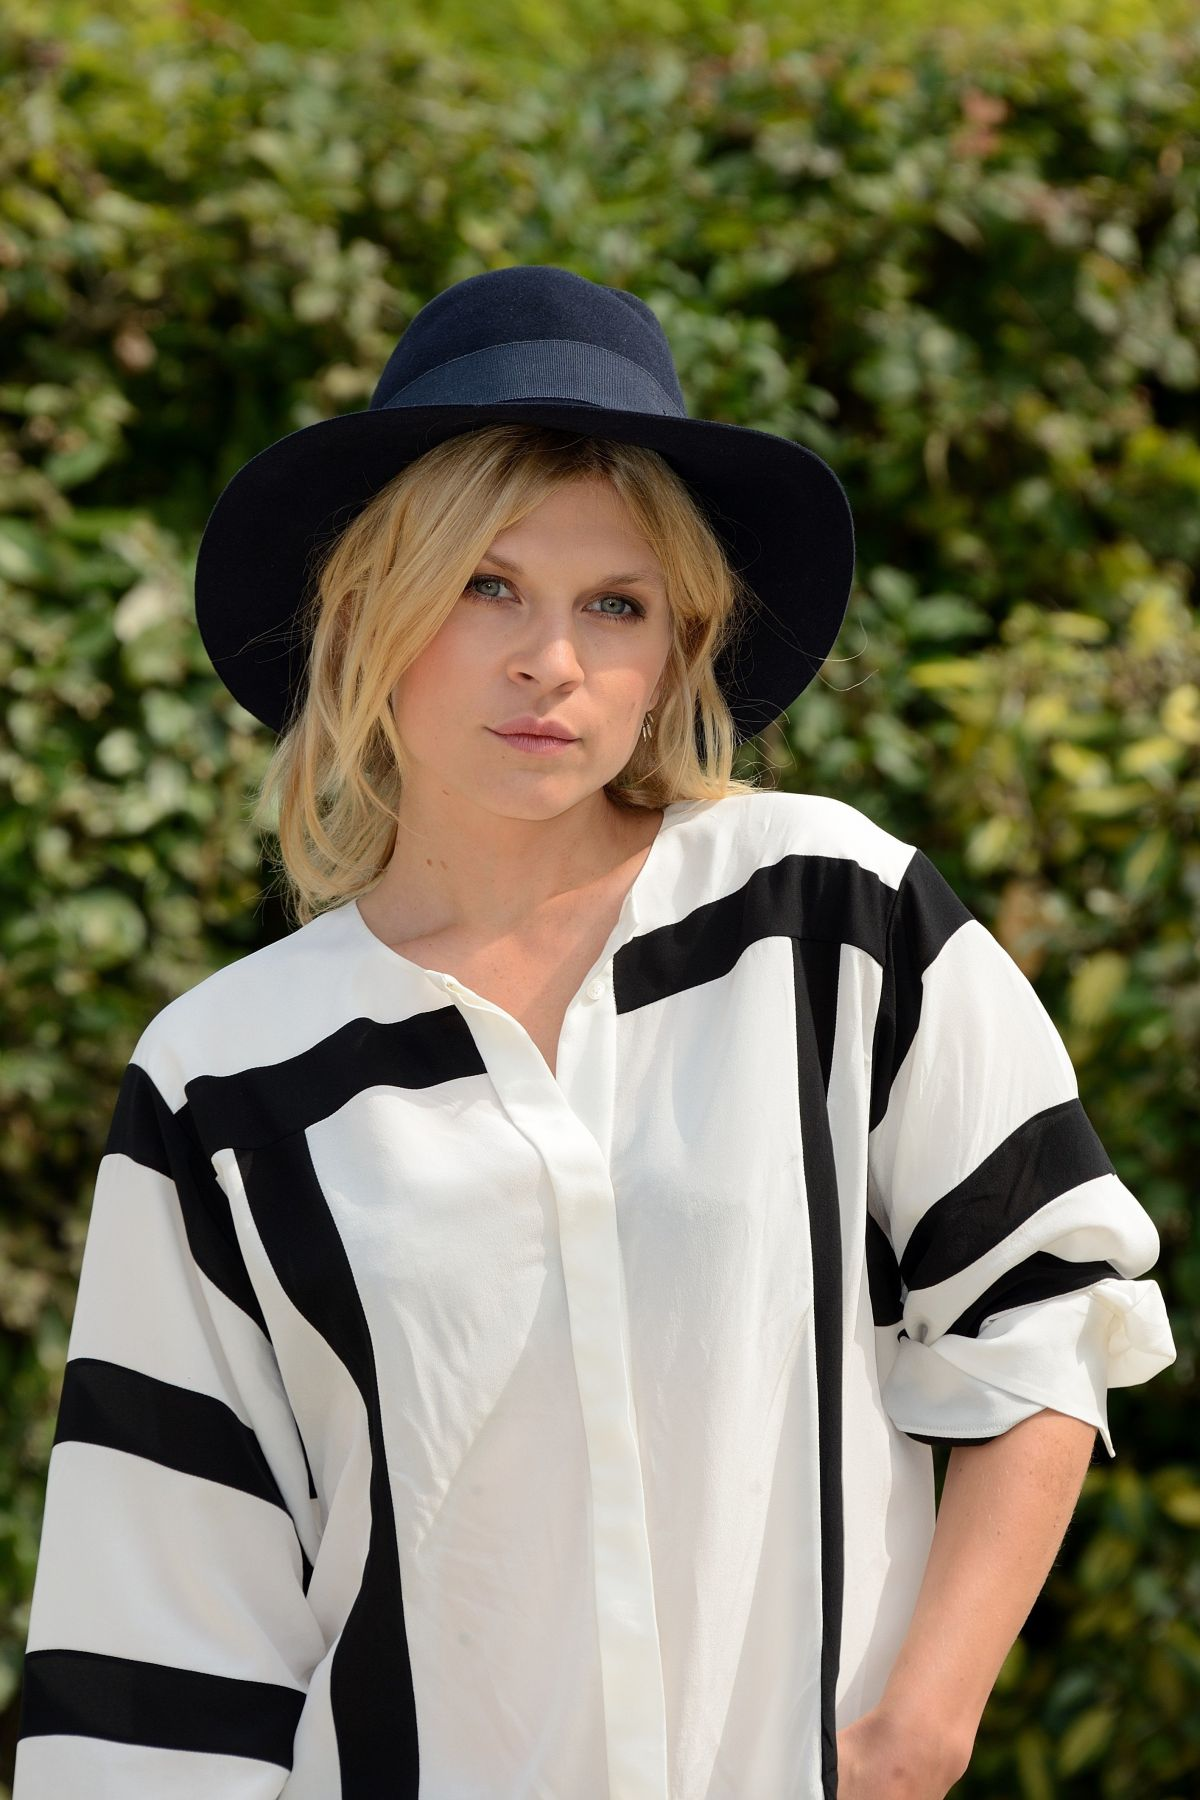 CLEMENCE POESY at Jury Revelation Cartier Photocall in France